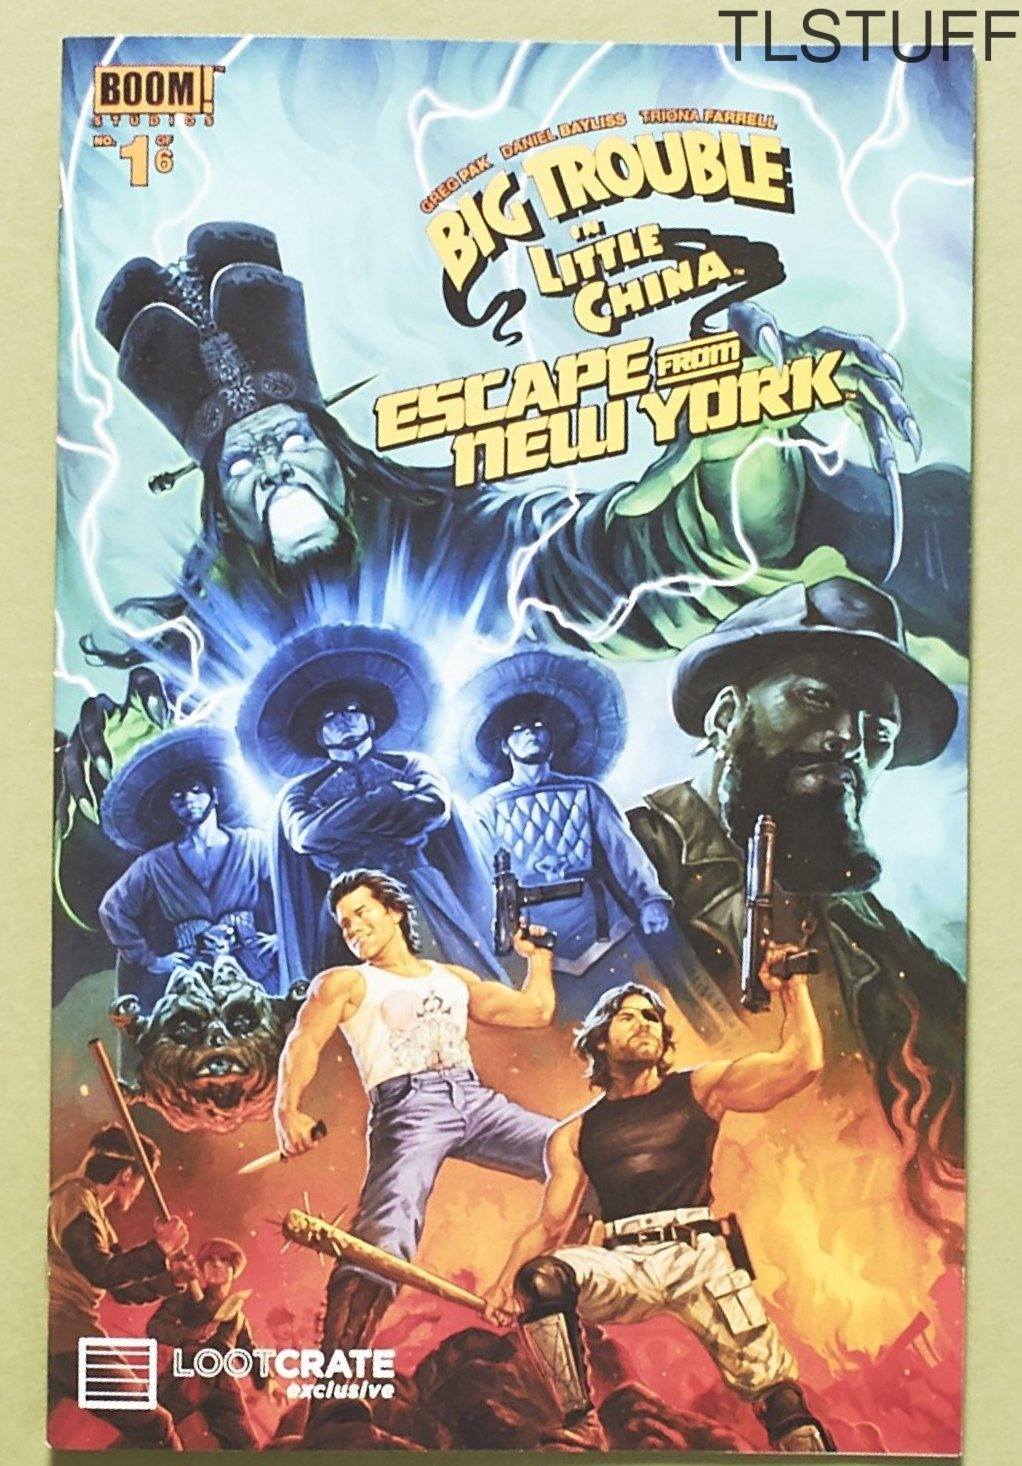 Big Trouble in Little China Escape From New York #